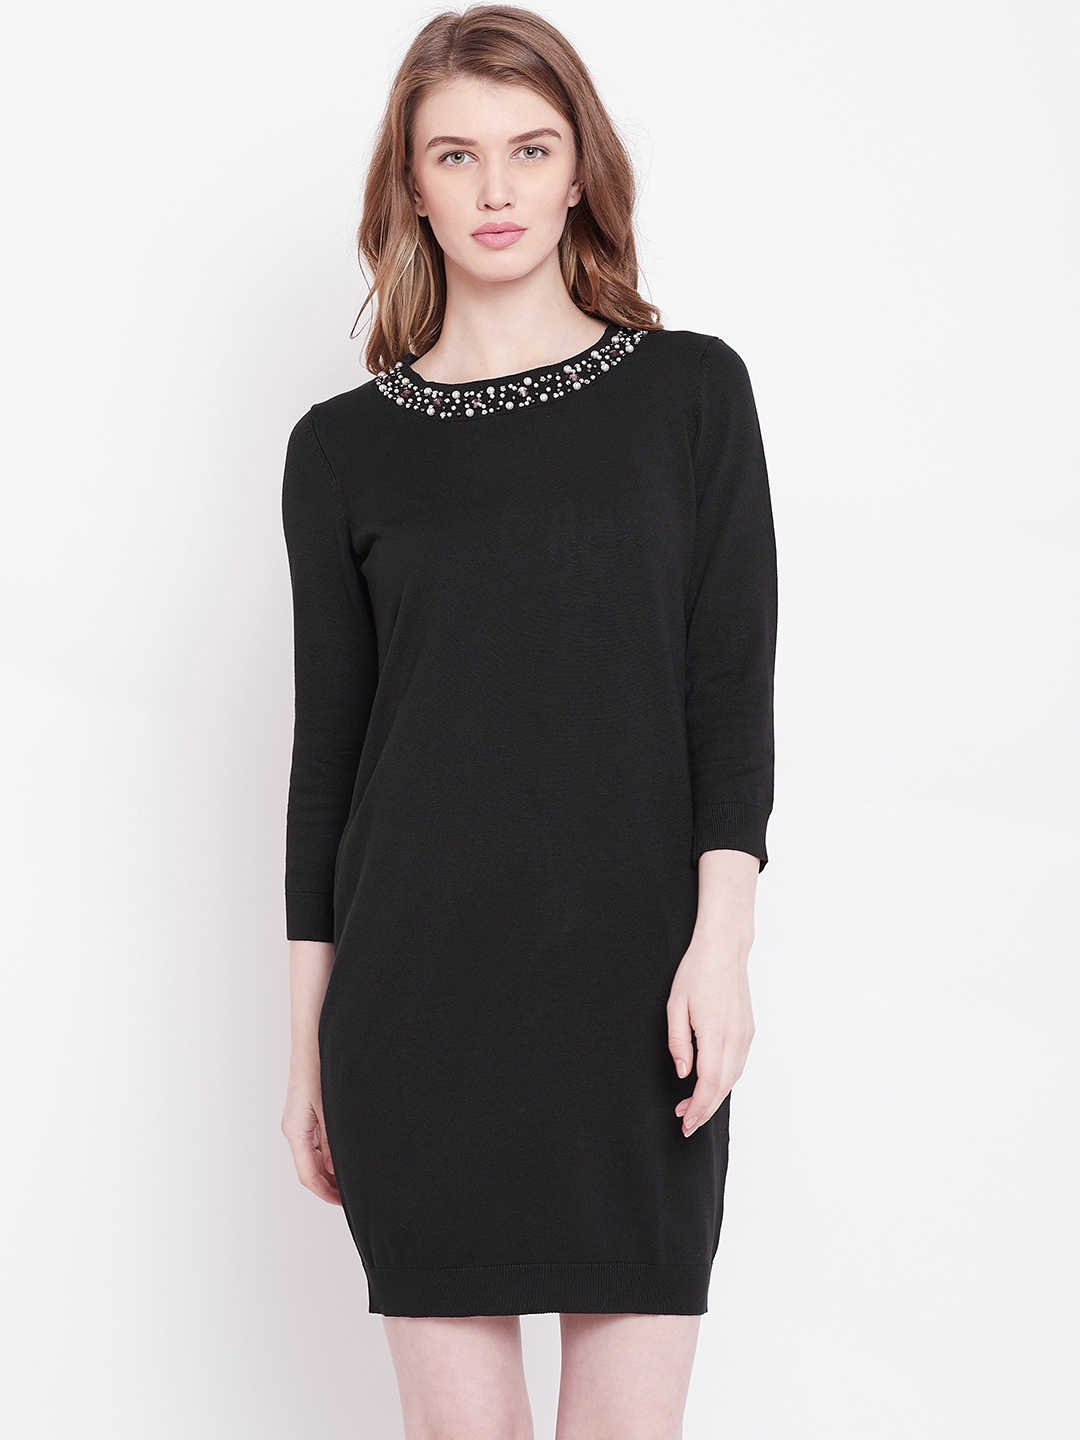 925e7fb397d Buy OVS Women Black Solid Sweater Dress With Embellished Detail ...